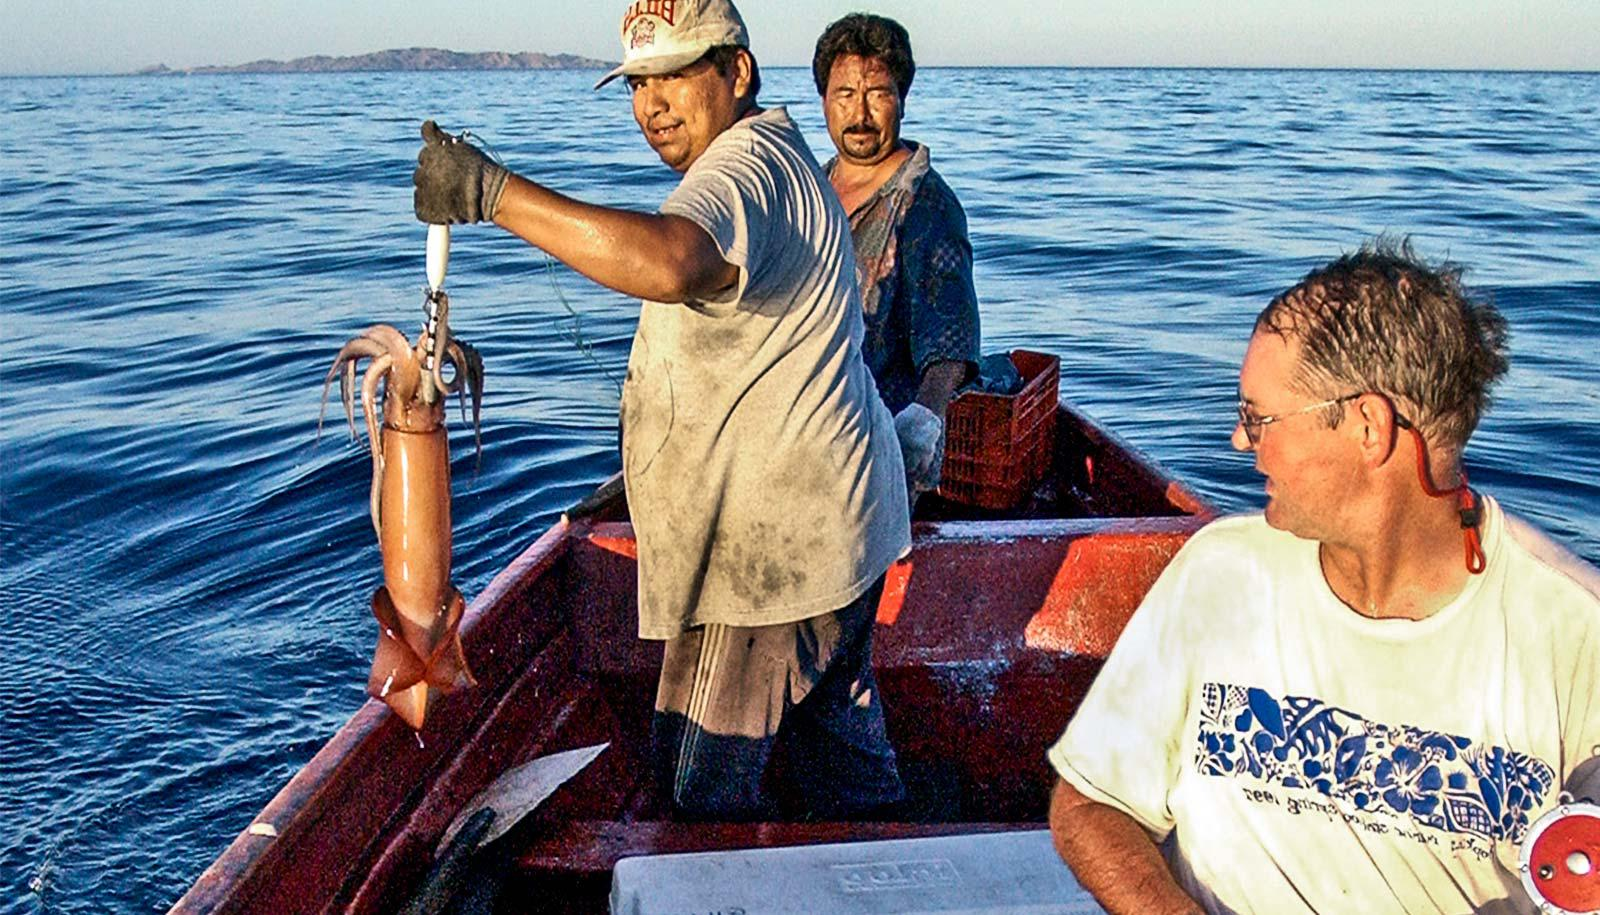 Biology Professor William Gilly, right, and two fishermen from Baja California capture a Humboldt squid for research (jumbo squid concept)